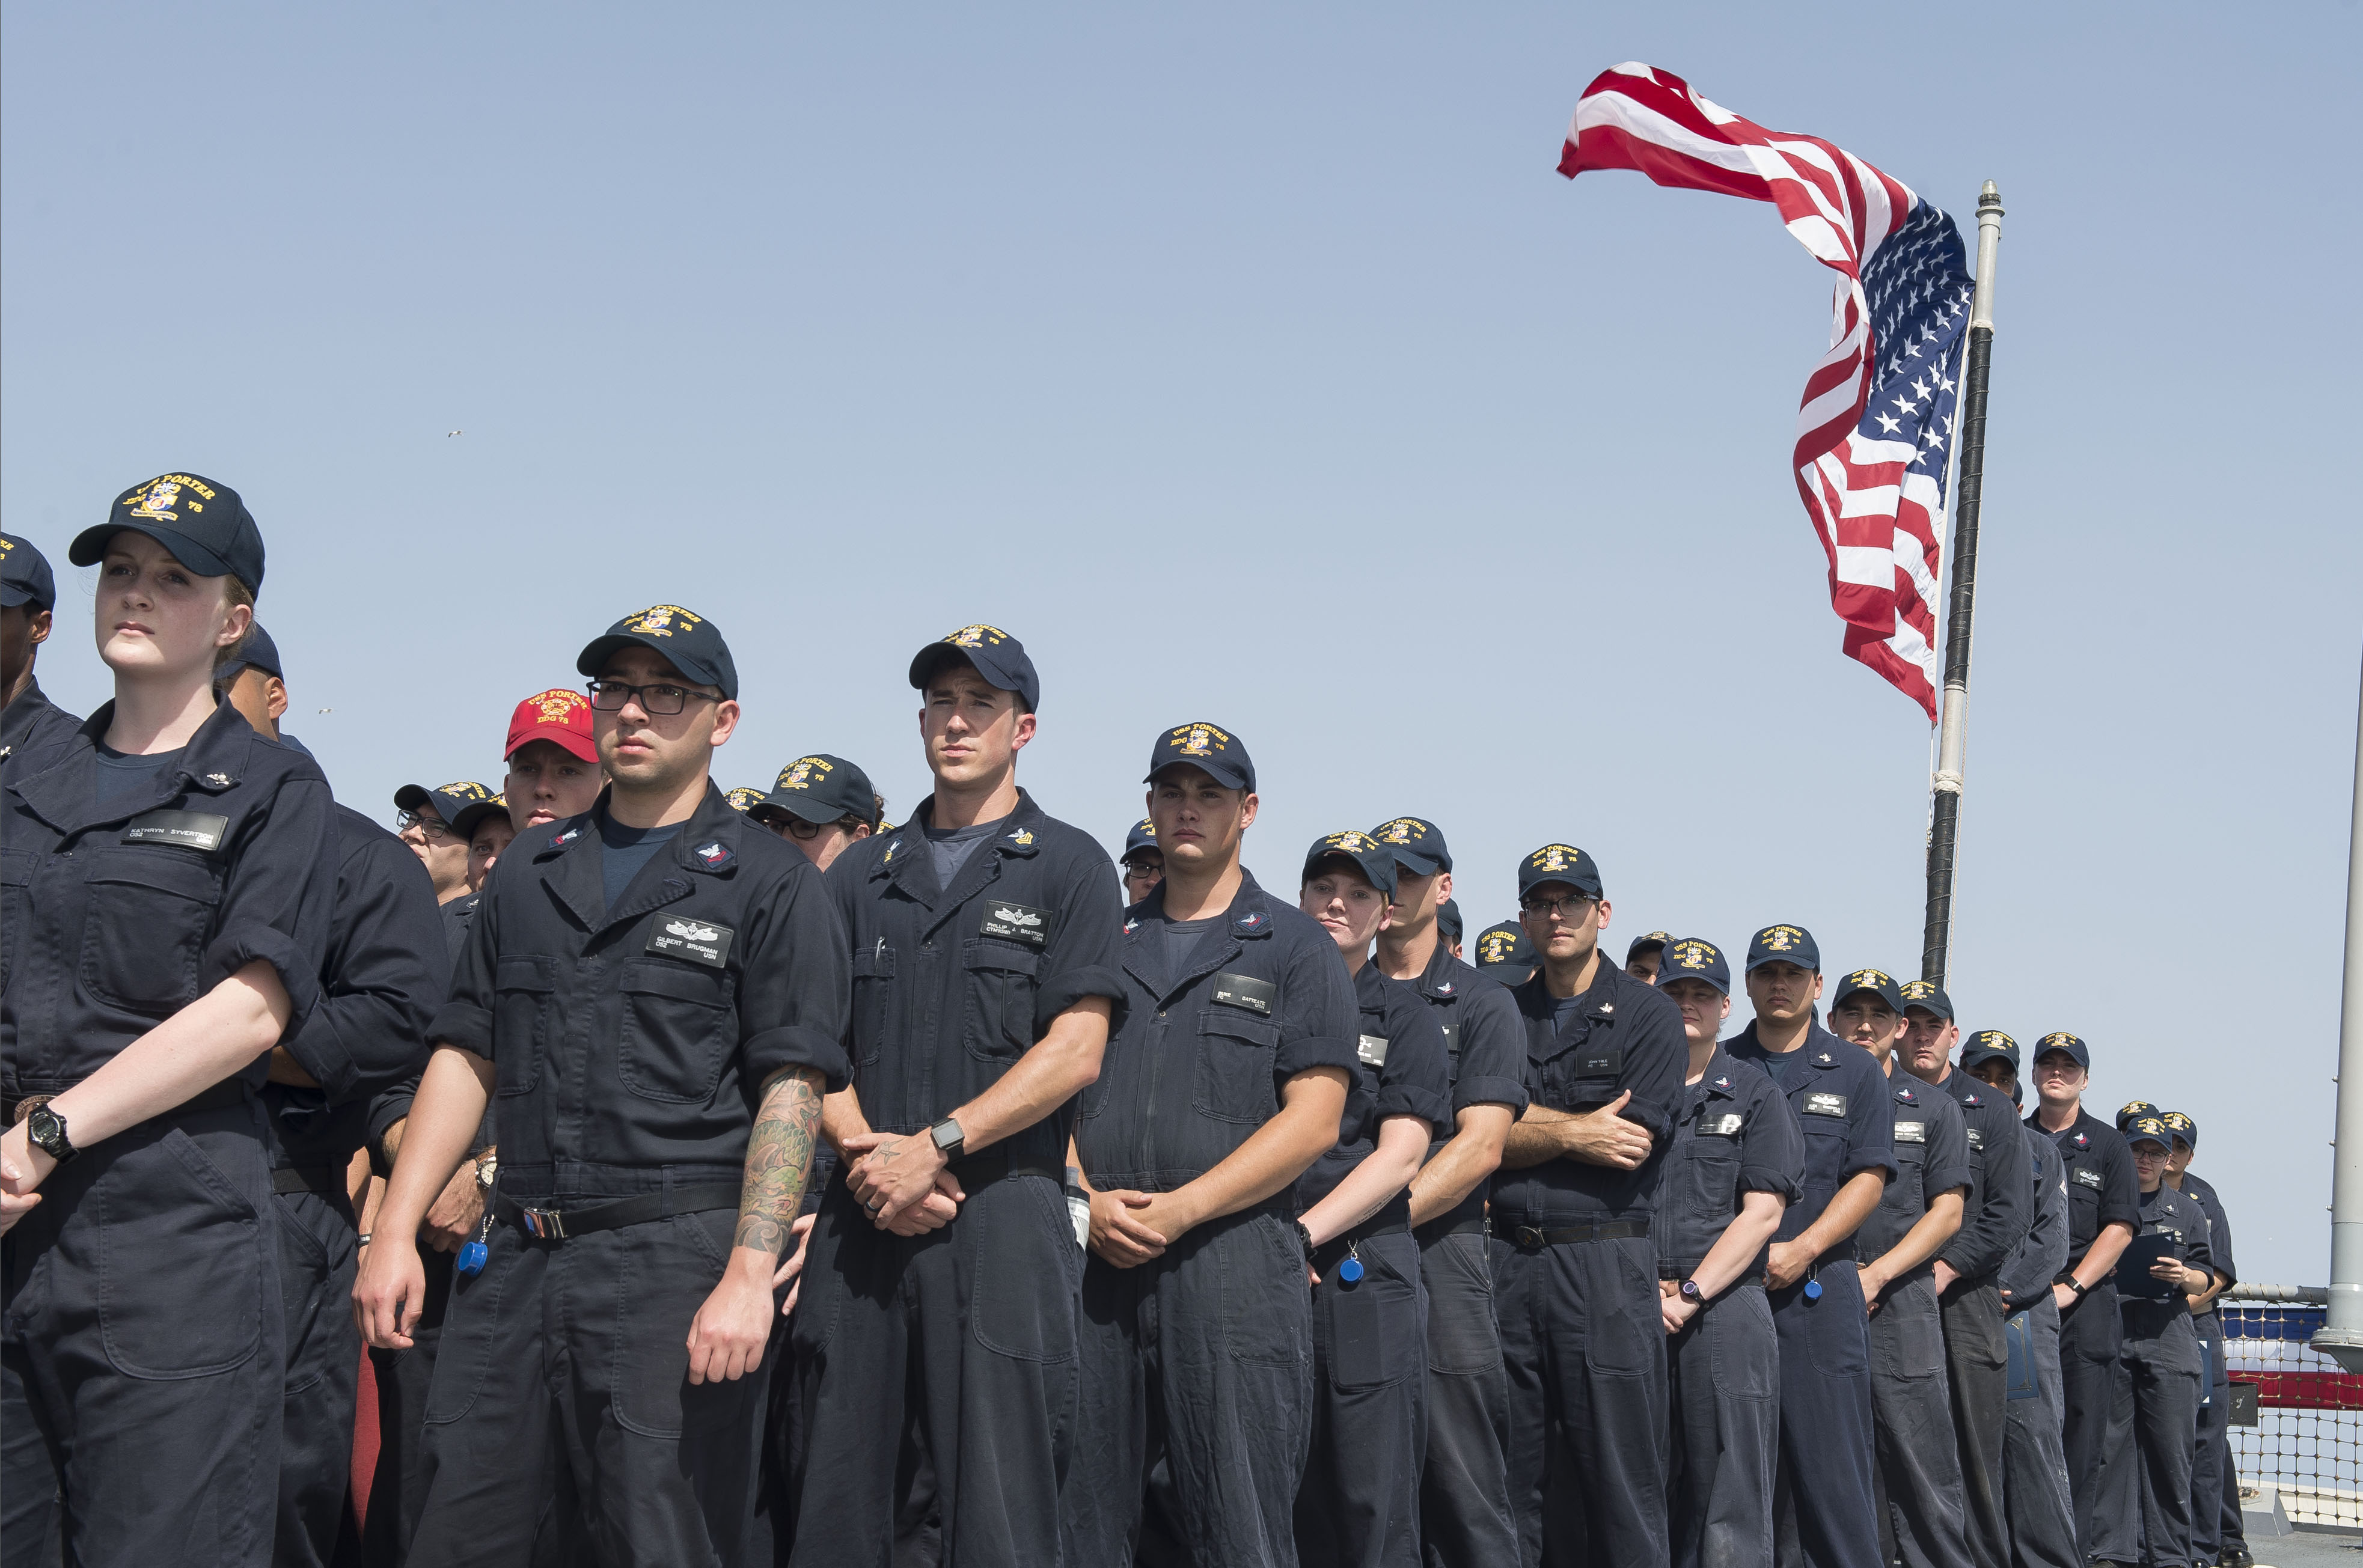 US Navy – All Hands Military Fit